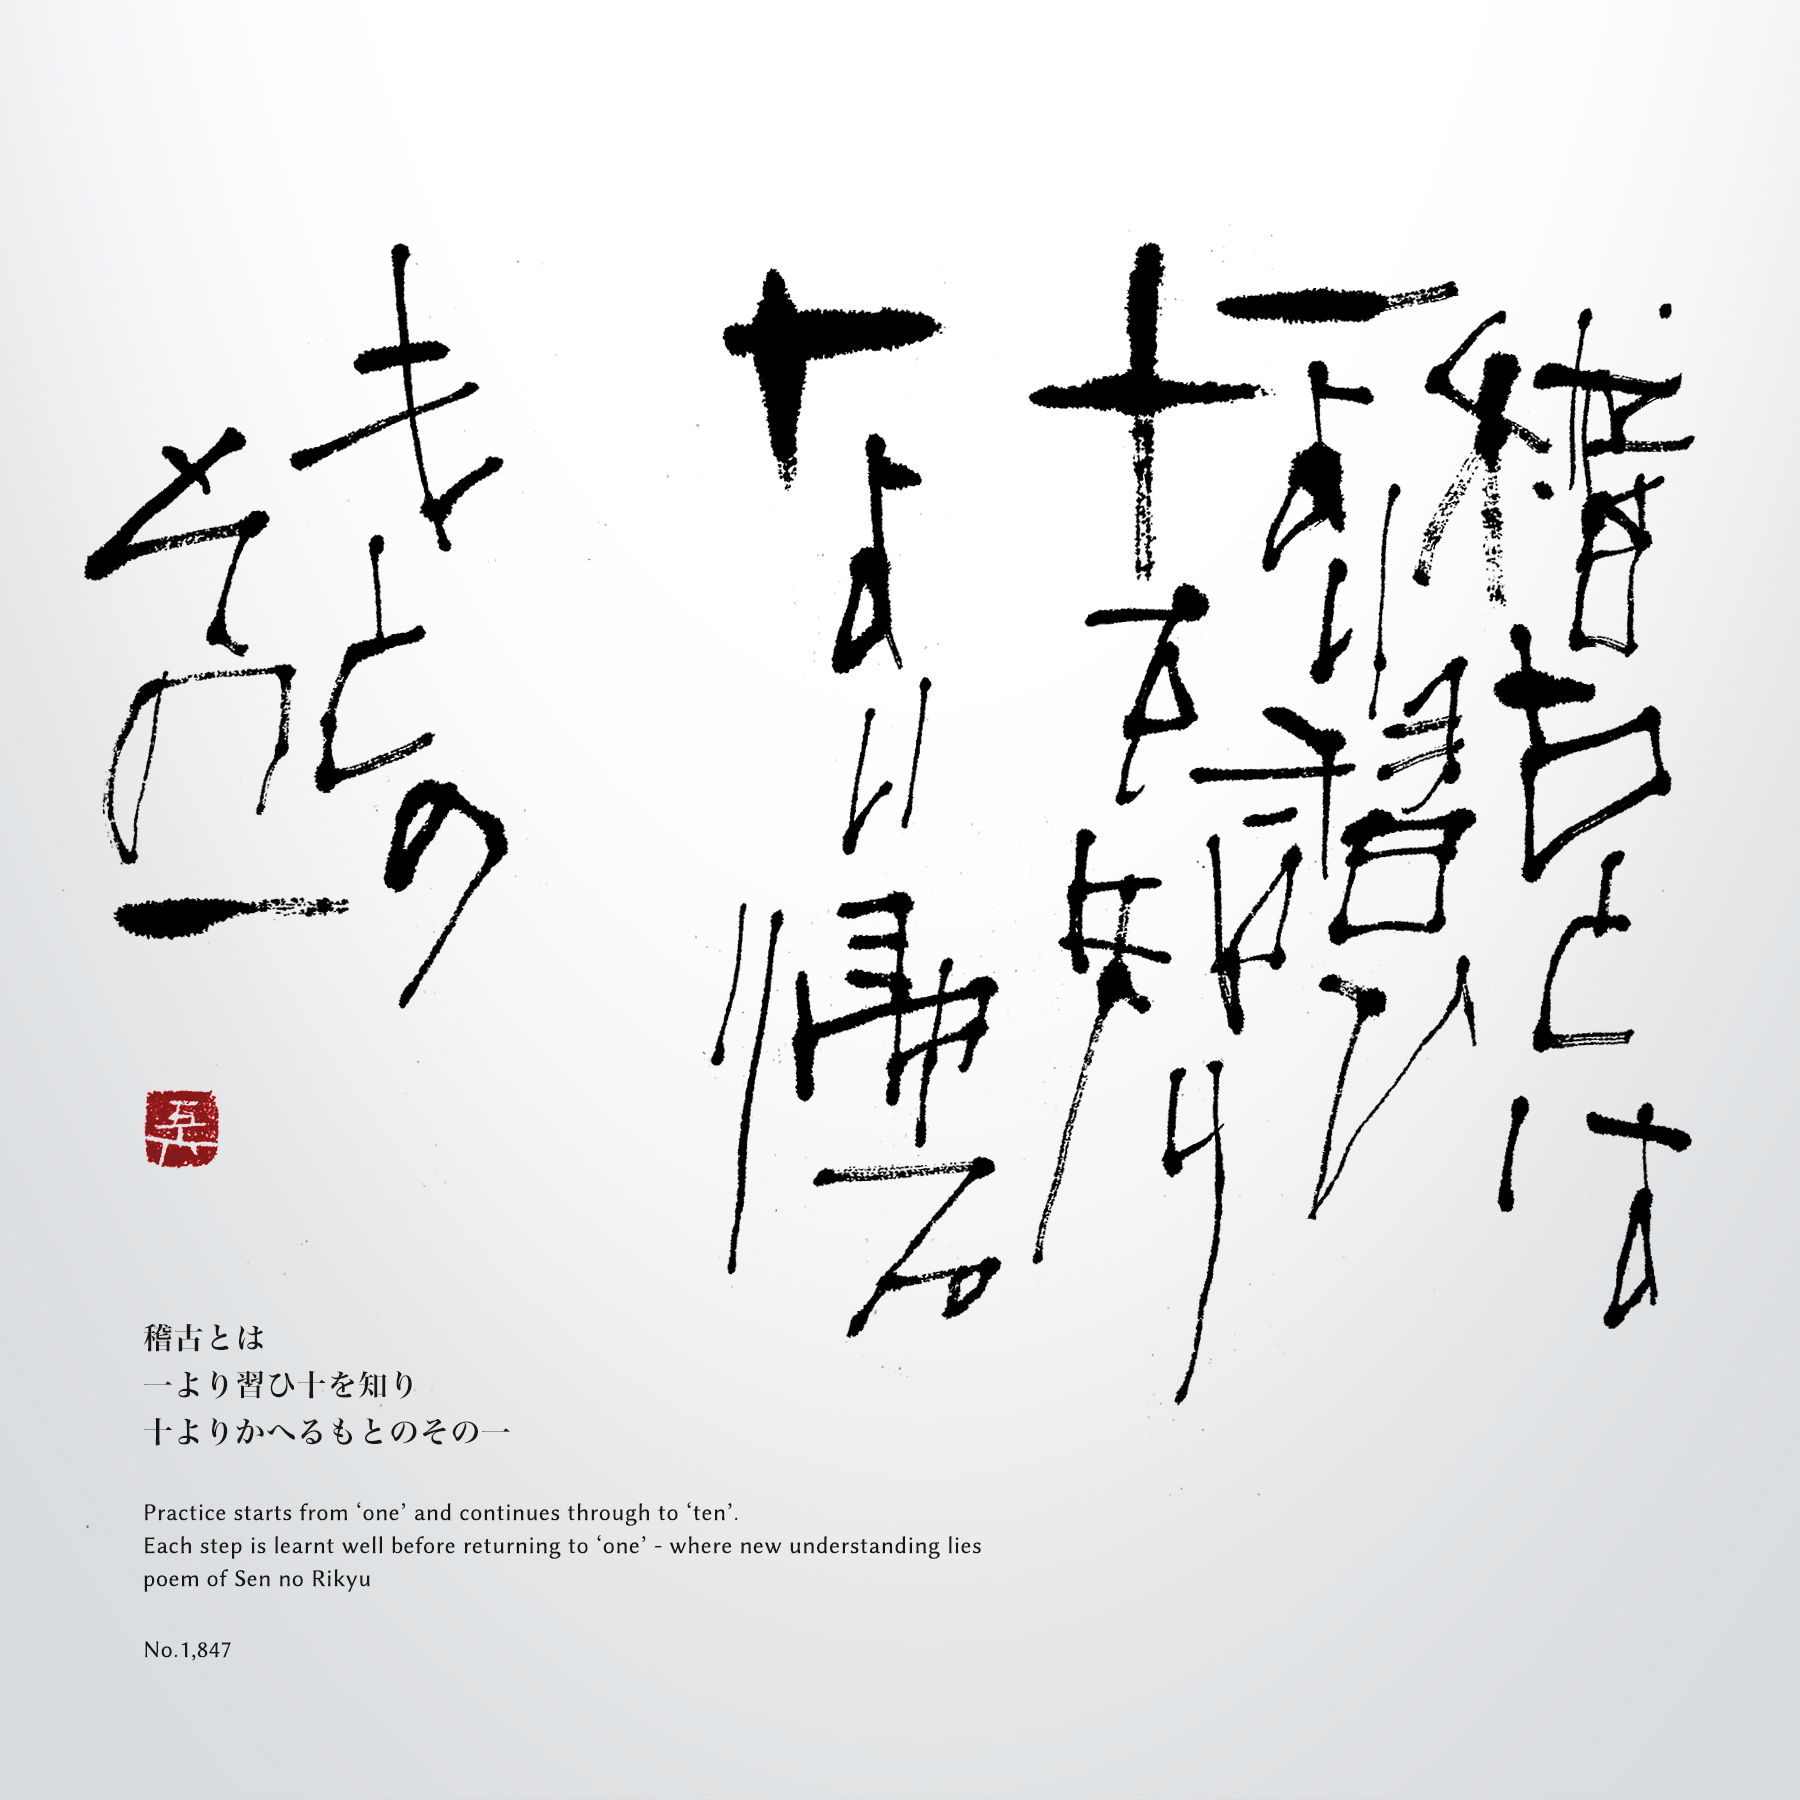 稽古とは | poem of Sen no Rikyu 書道作品 japaneseart japanese calligraphy 書家 田川悟郎 Goroh Tagawa